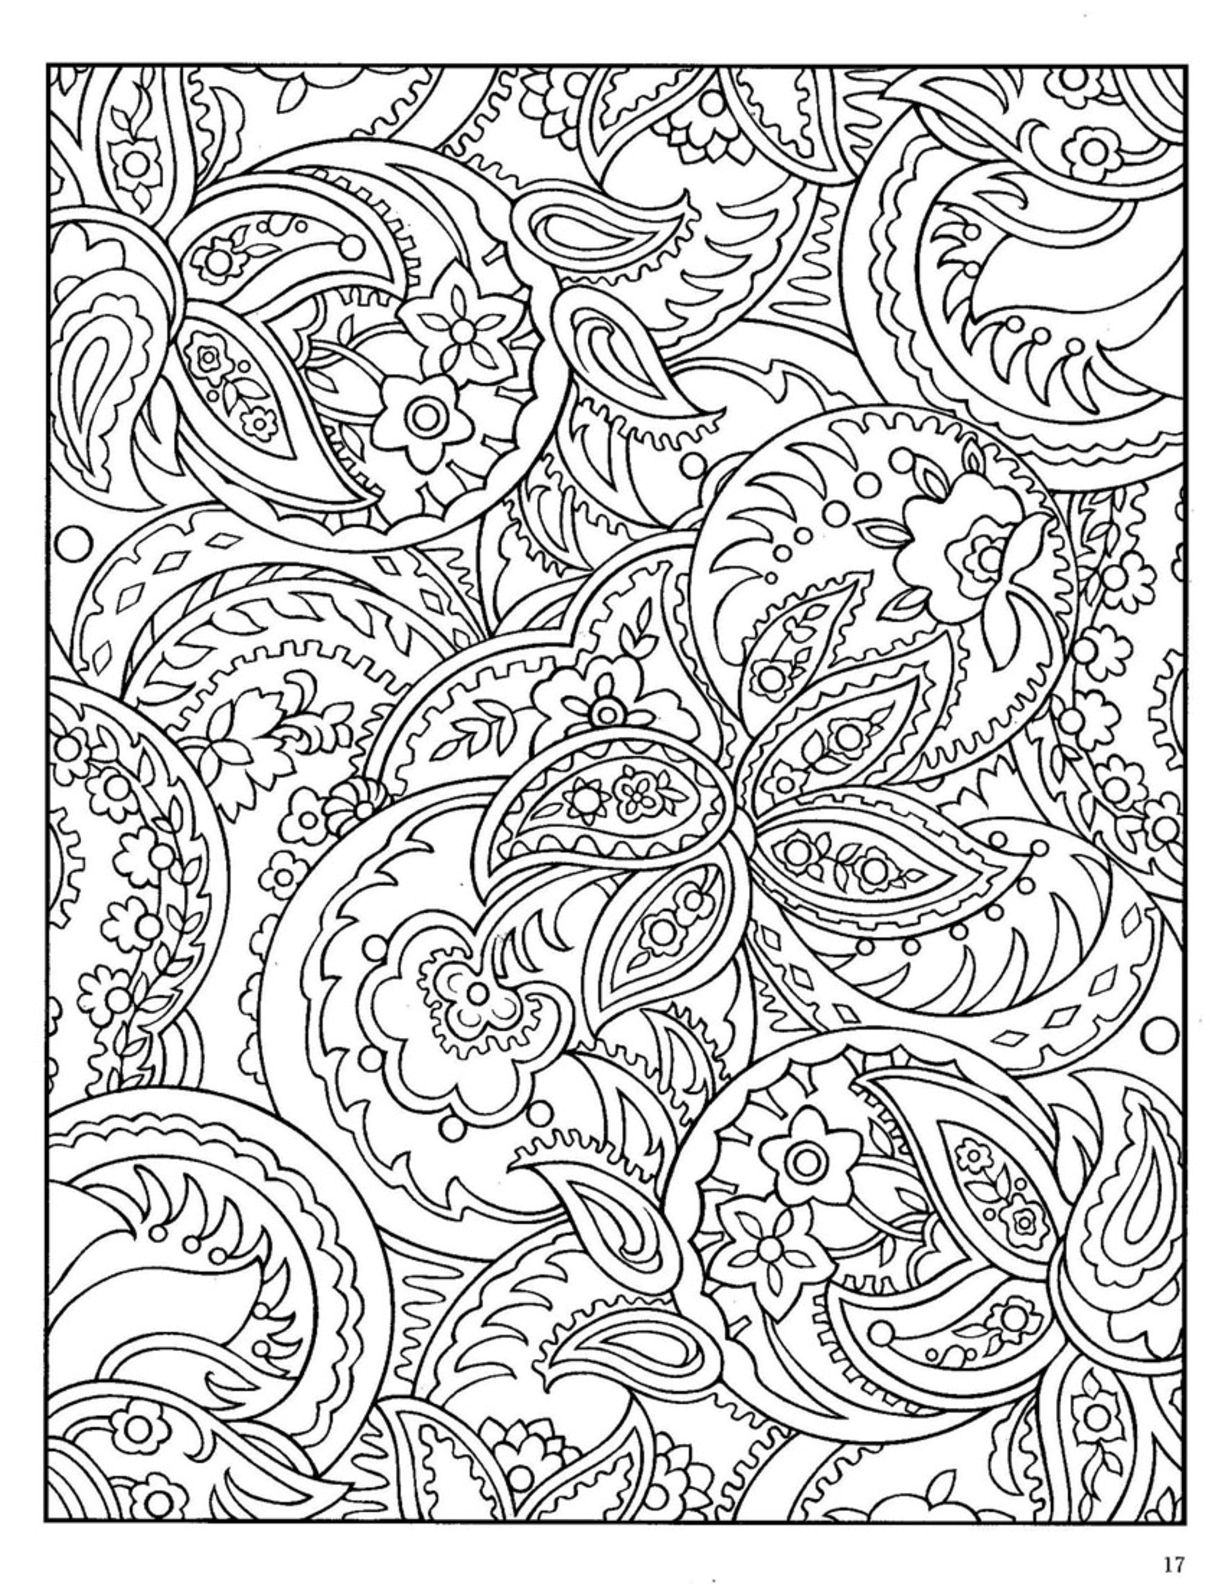 adults color childrens coloring books adults color childrens coloring books adults coloring books color childrens